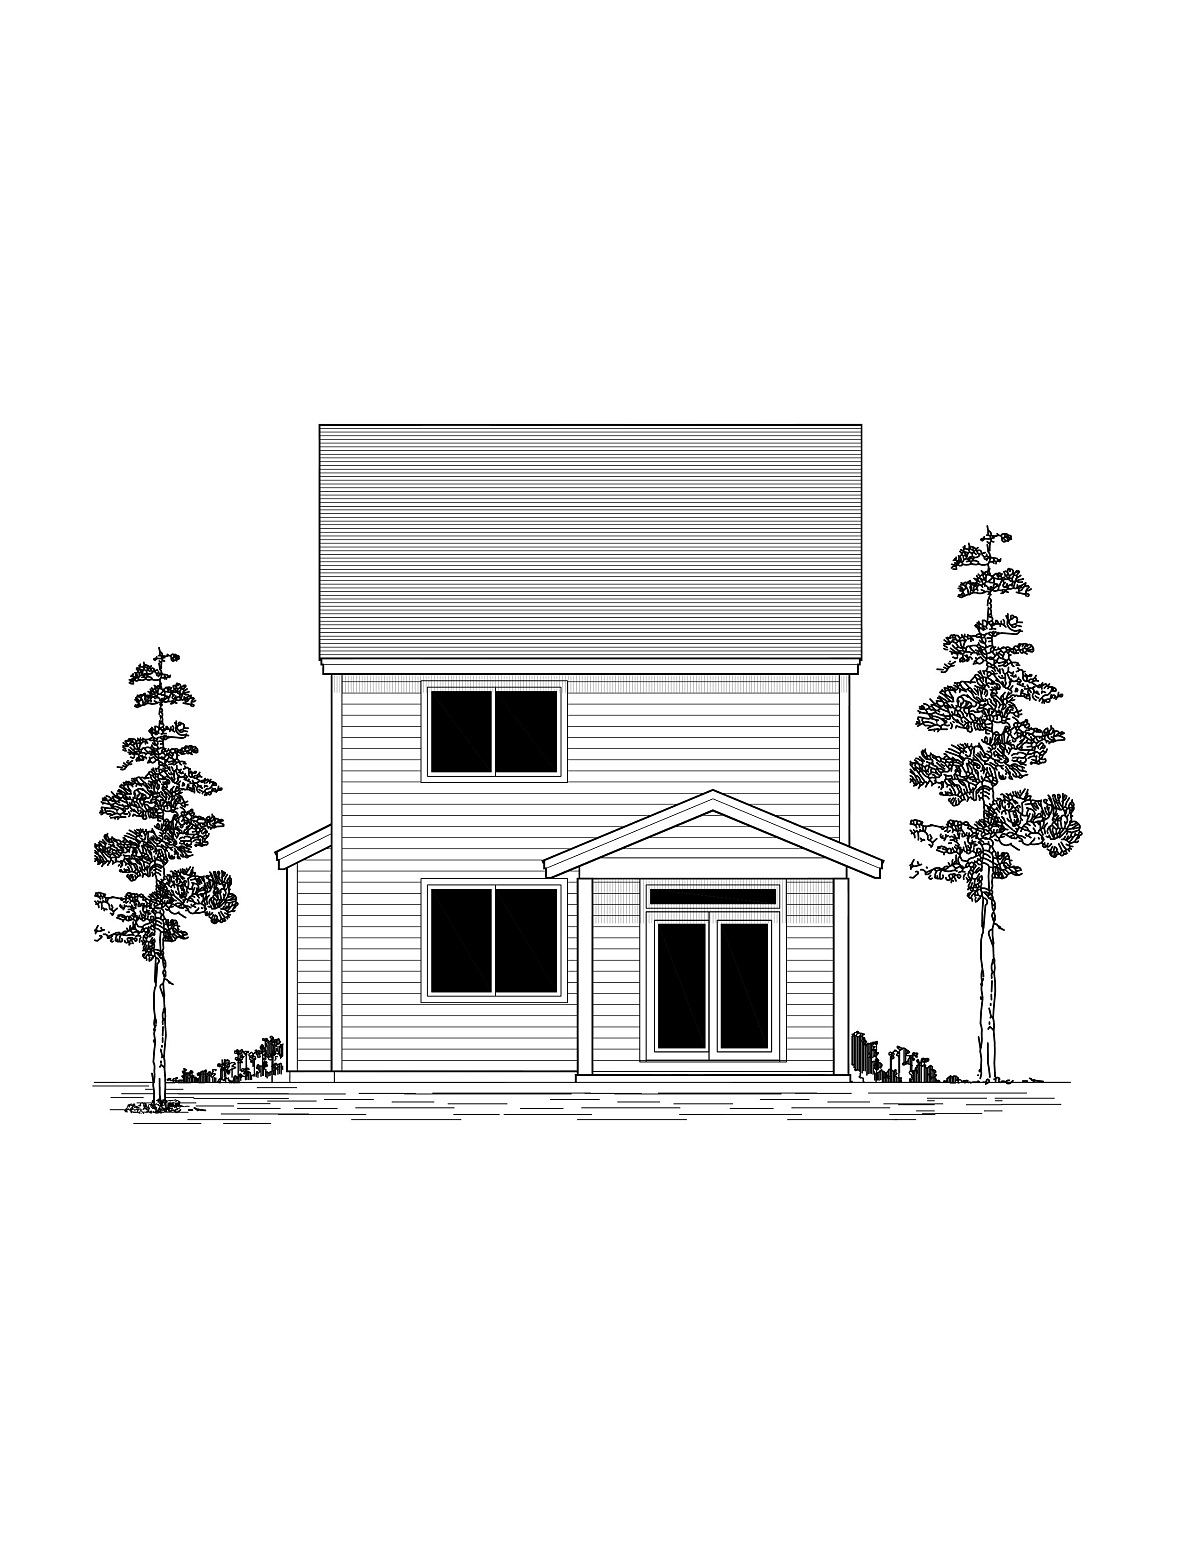 Craftsman, Traditional House Plan 44407 with 3 Beds, 3 Baths, 2 Car Garage Rear Elevation